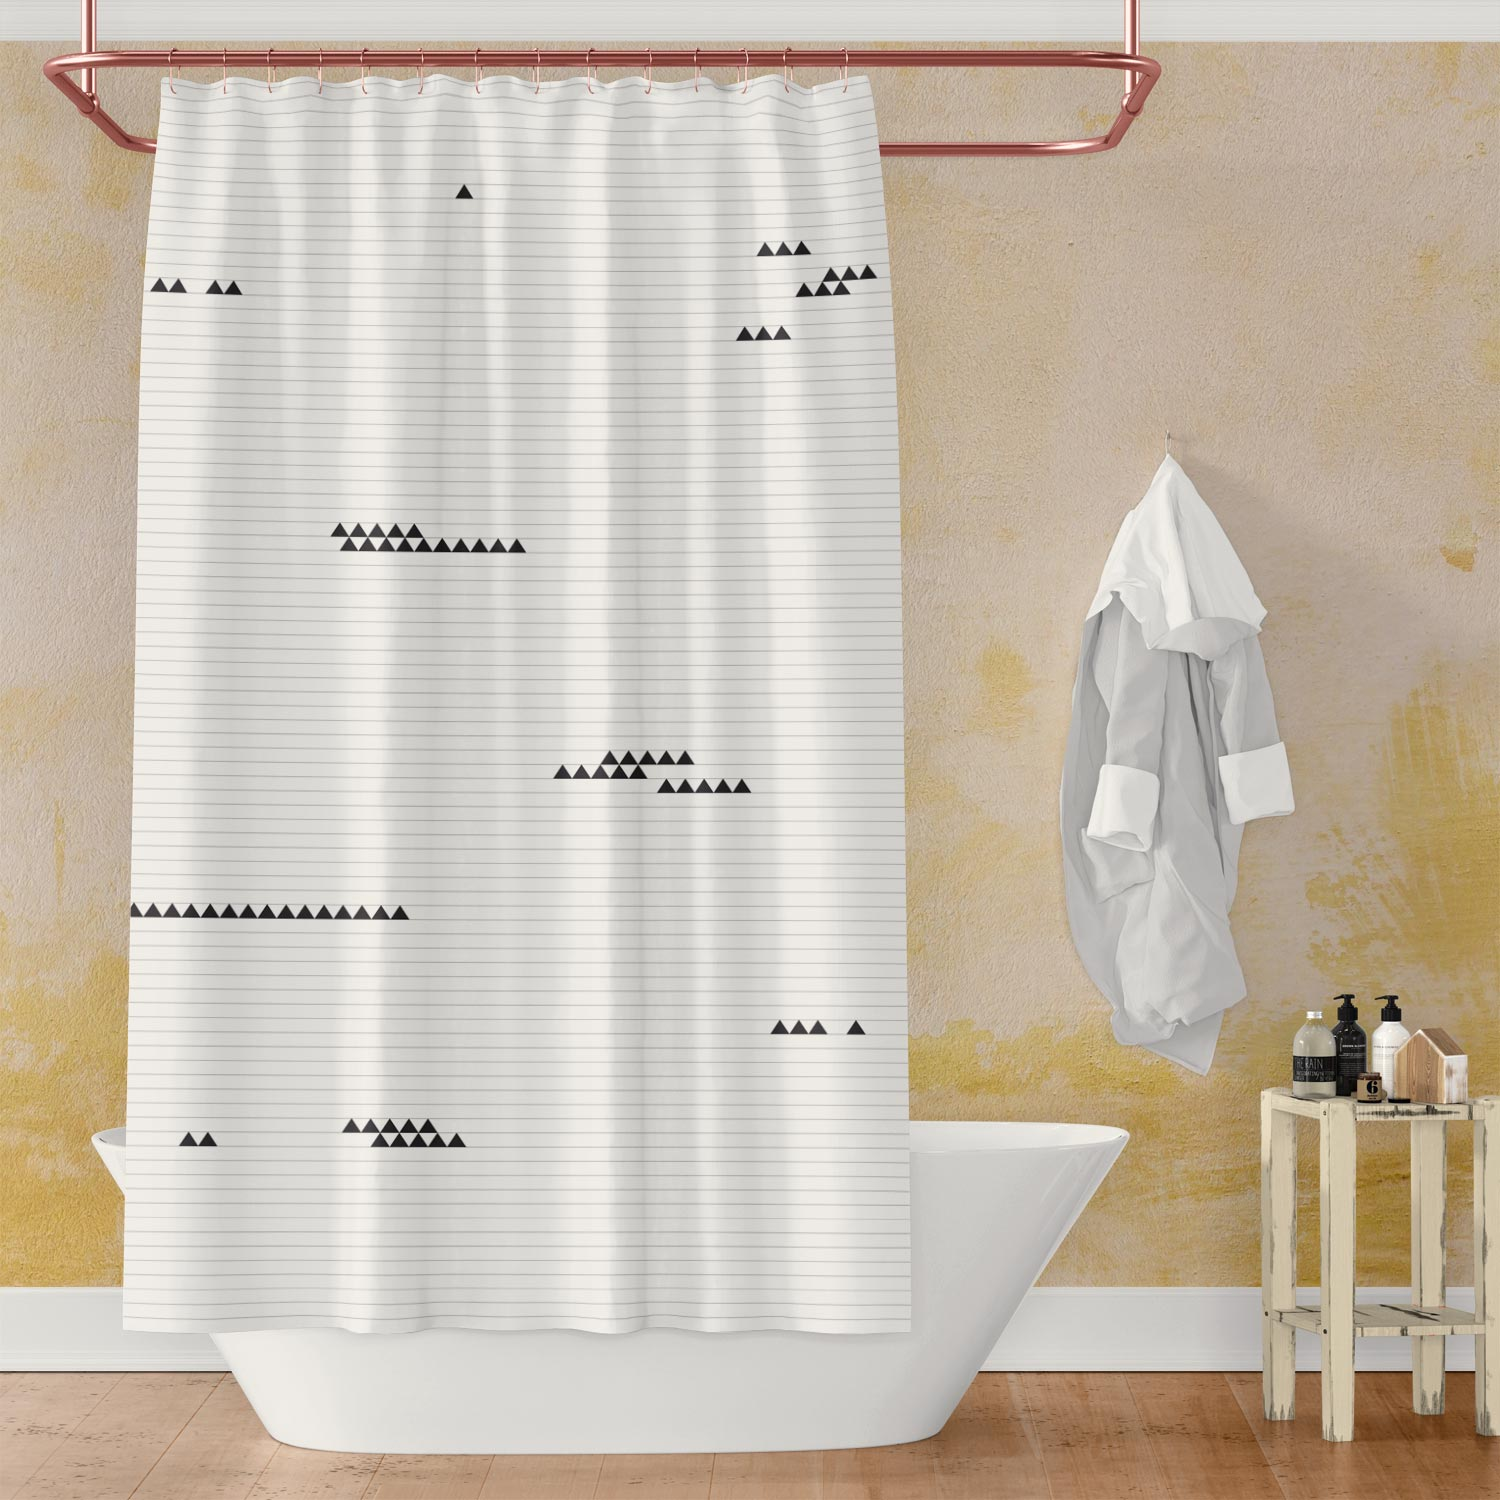 Black & White Shower Curtain with Minimalist Triangle Design